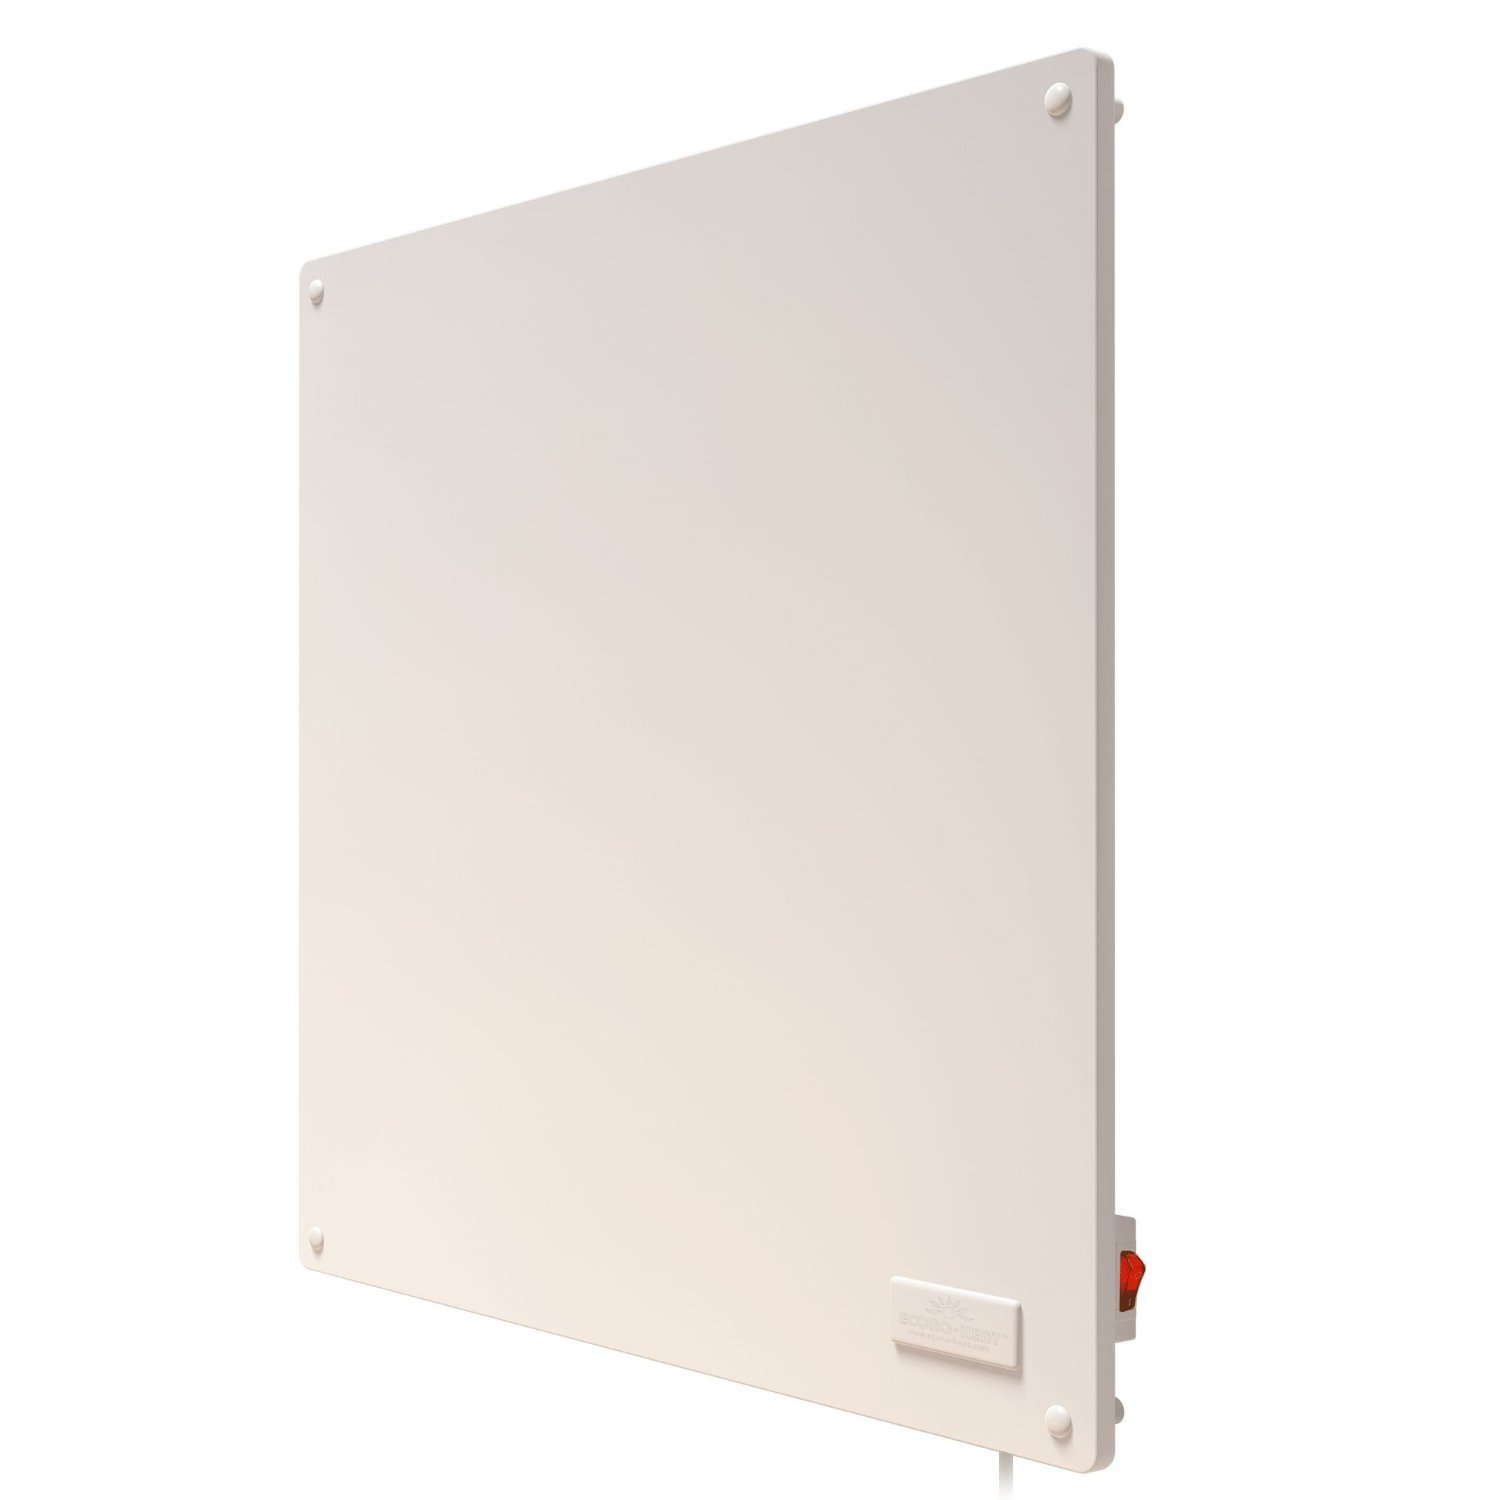 Slimline electric heaters wall mounted - Slimline Electric Heaters Wall Mounted 15